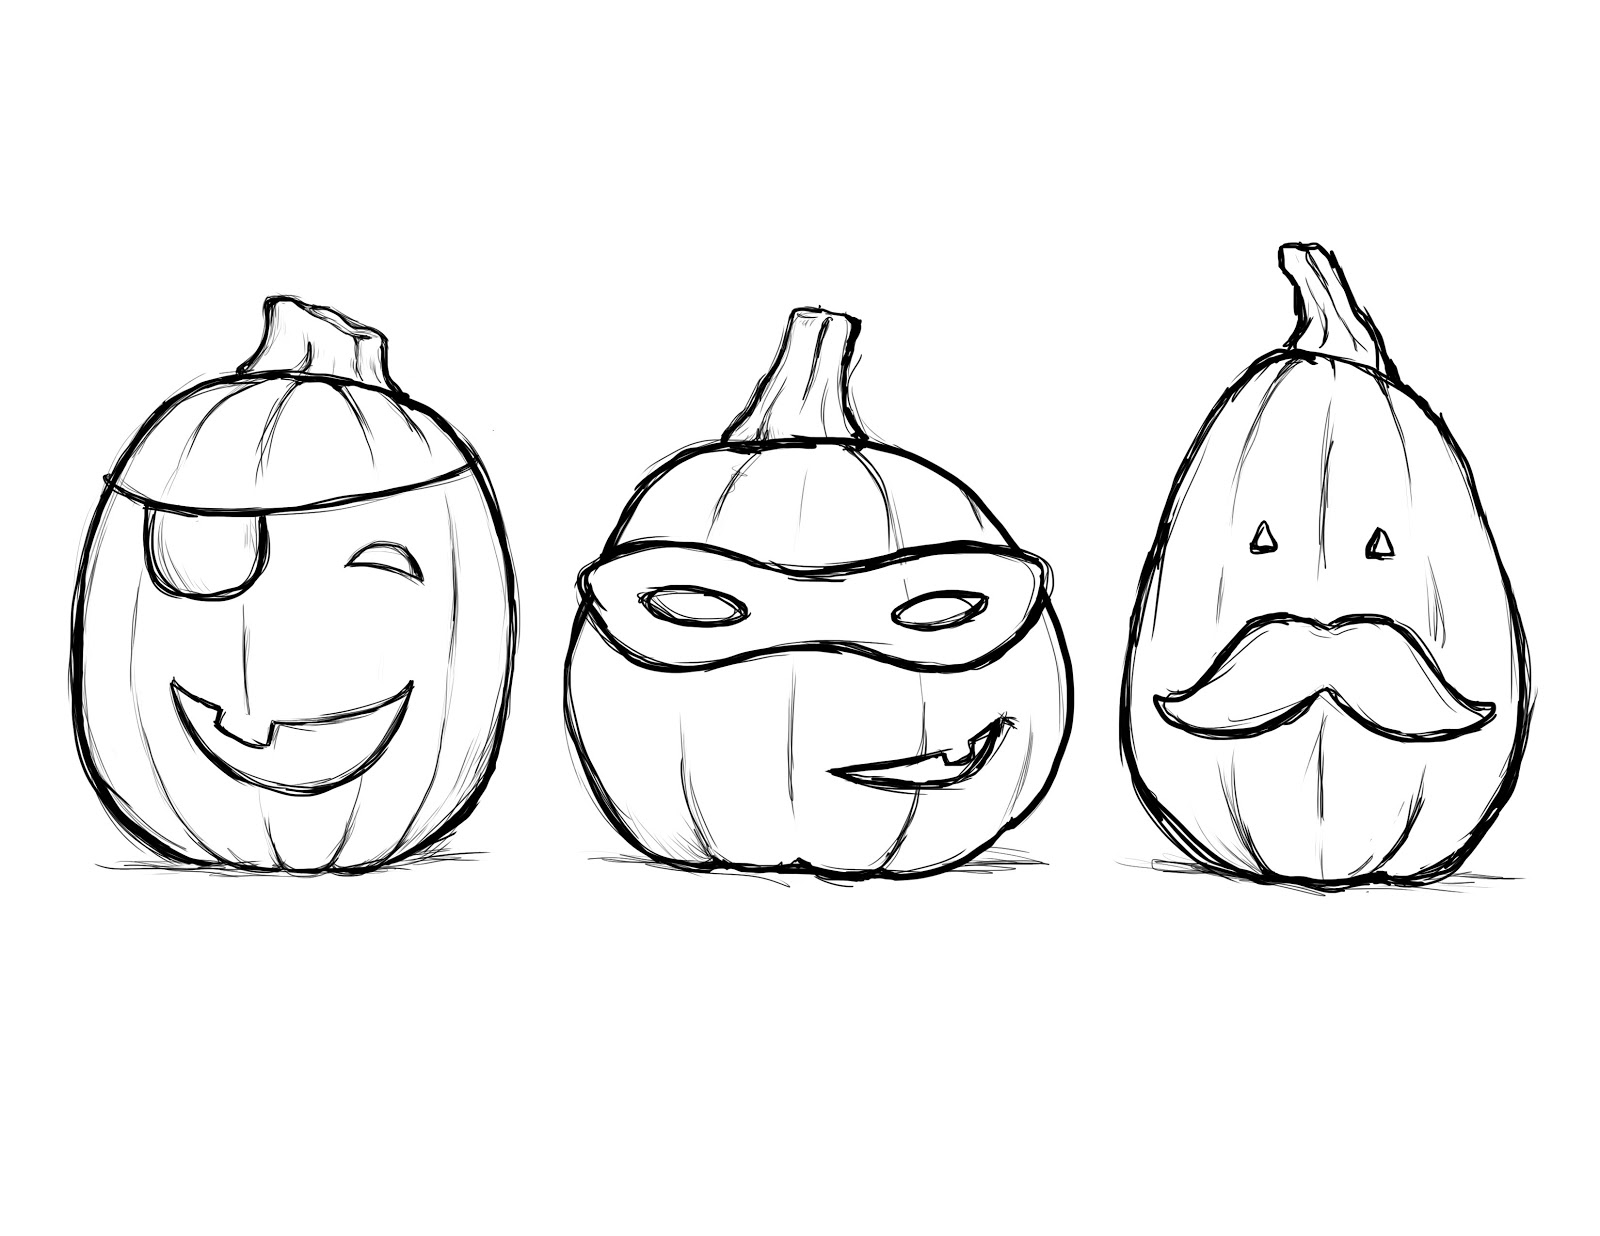 1600x1236 Popular Fall Pumpkin Coloring Pages For Kids Womanmate Com